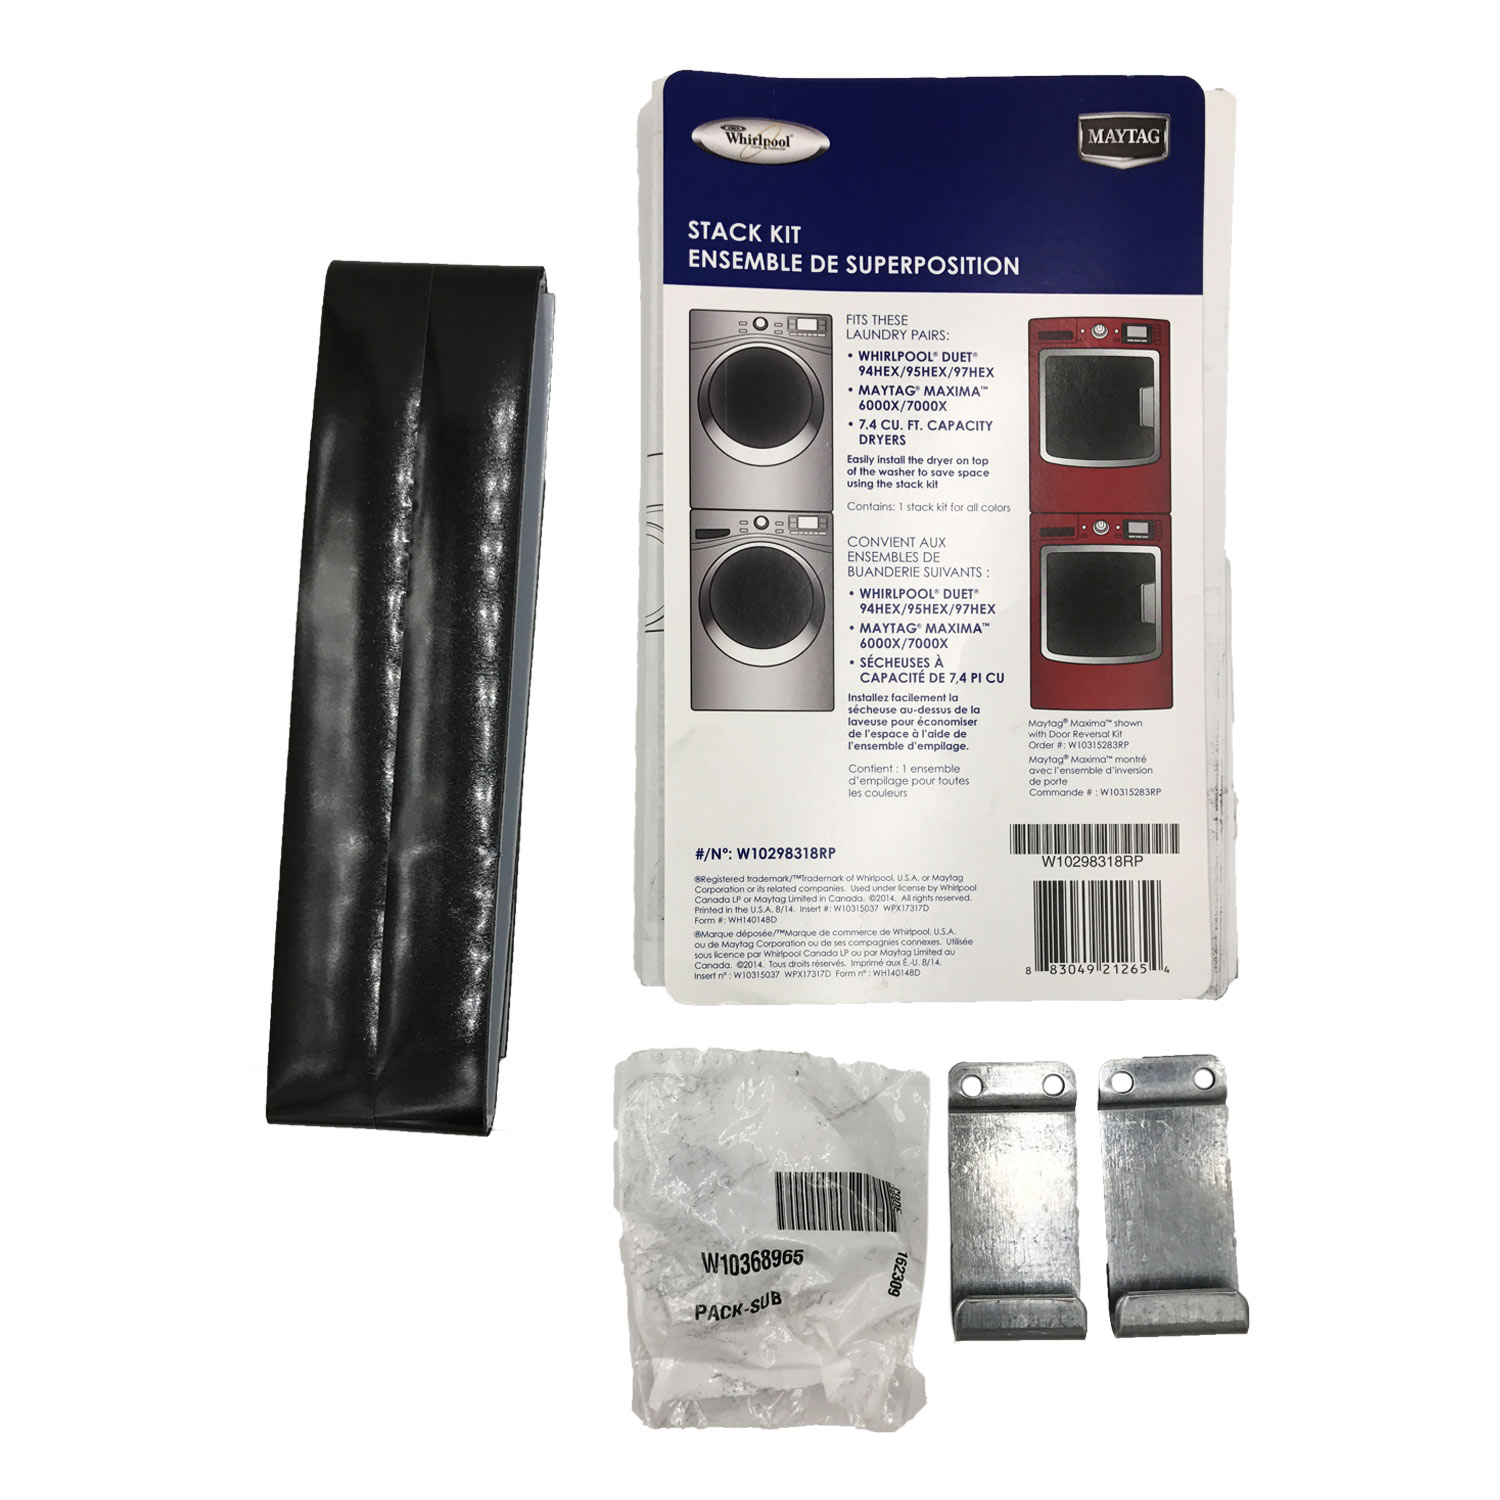 W10298318RP Whirlpool Washer Kit Stack